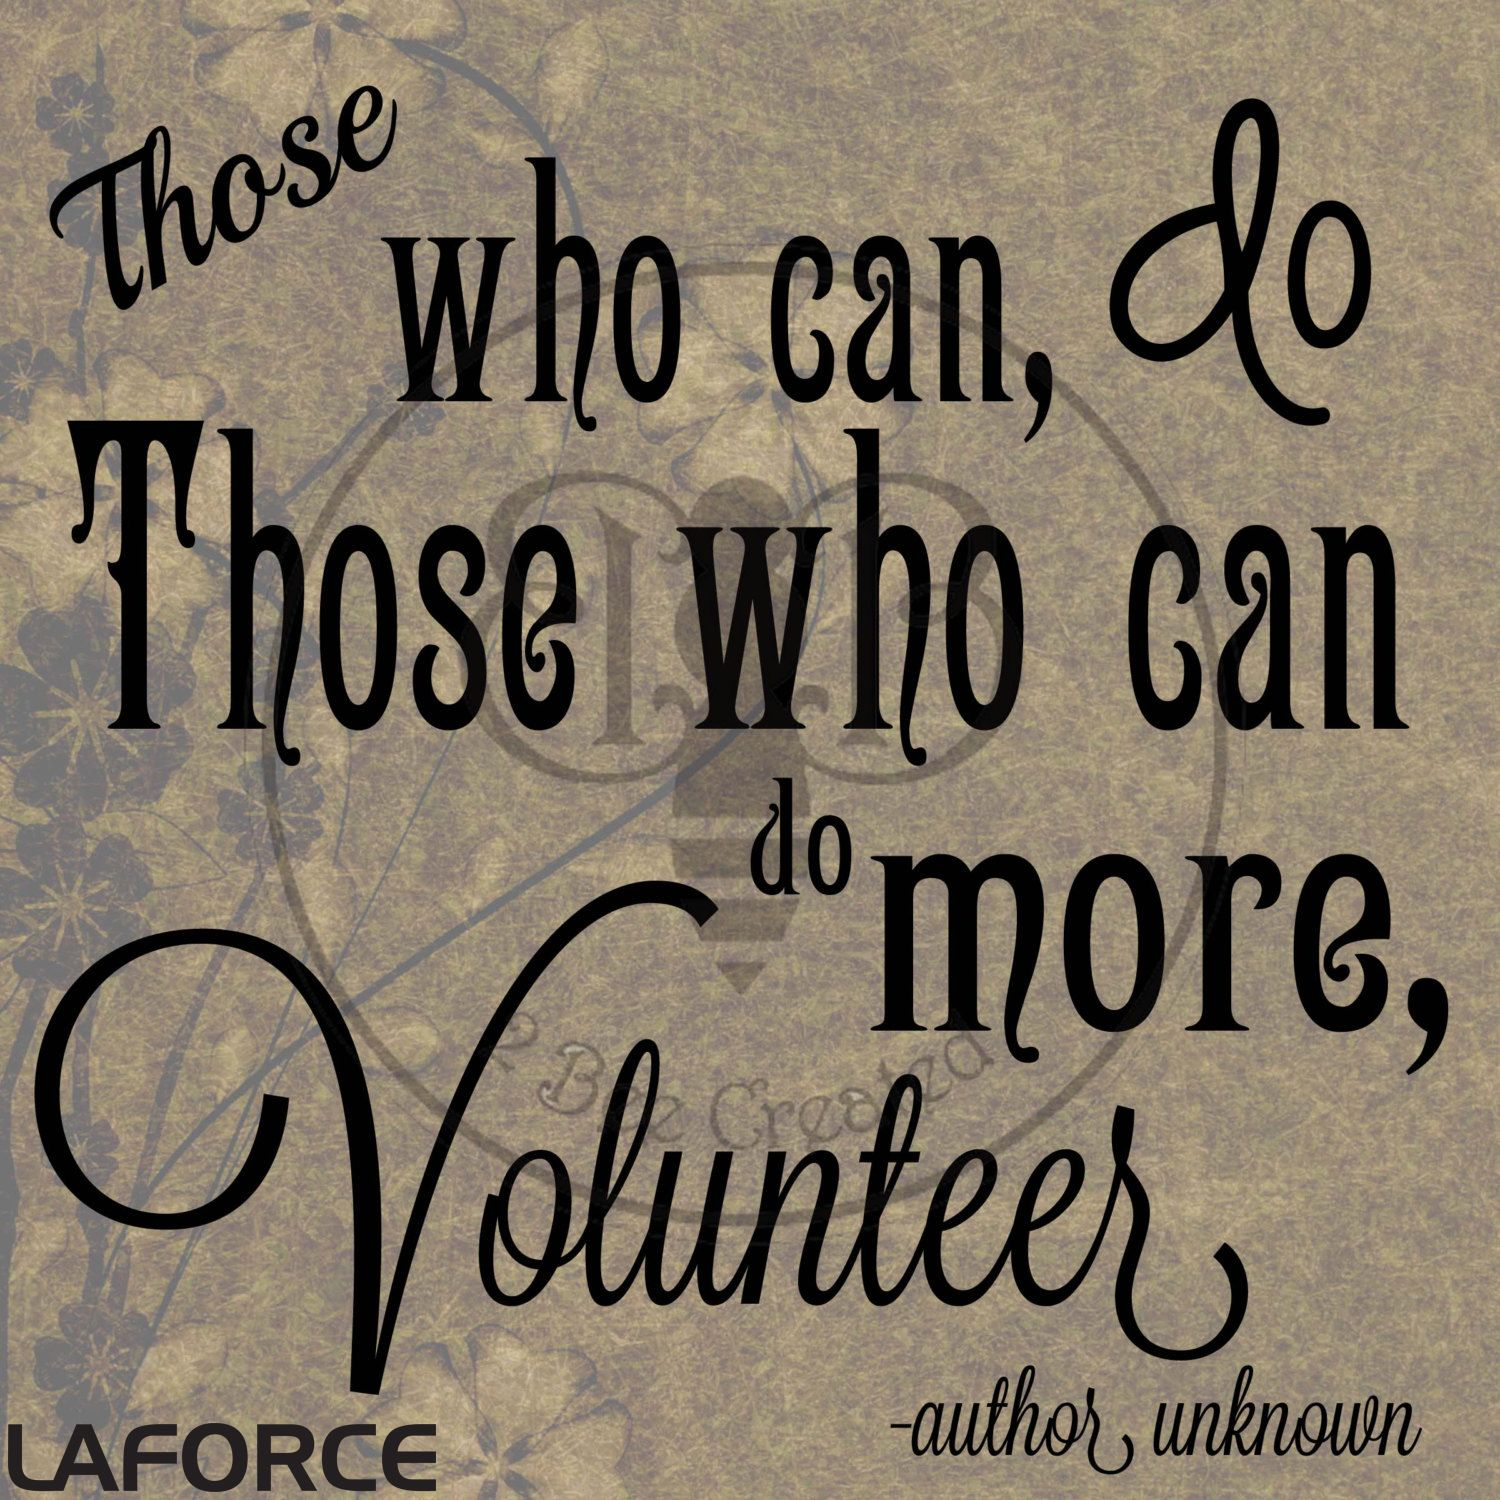 Quotes On Volunteering Those Who Can Do Those Who Can Do More Volunteer Volunteer Give